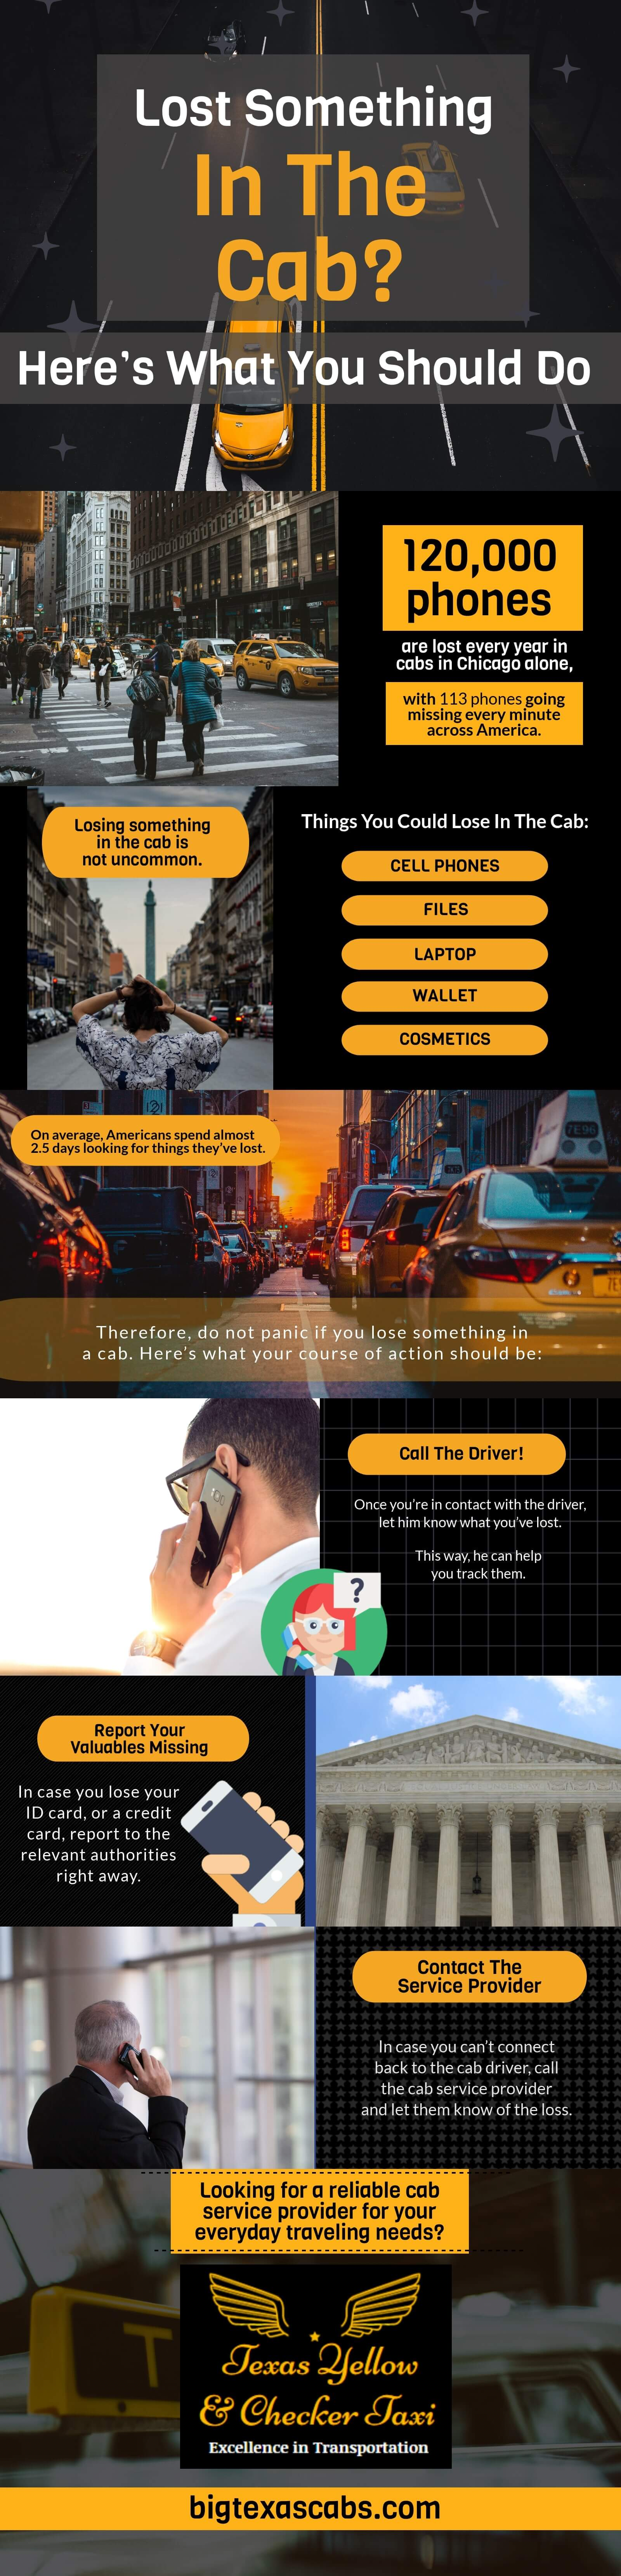 Lost Something In the Cab? Here's What You Should Do